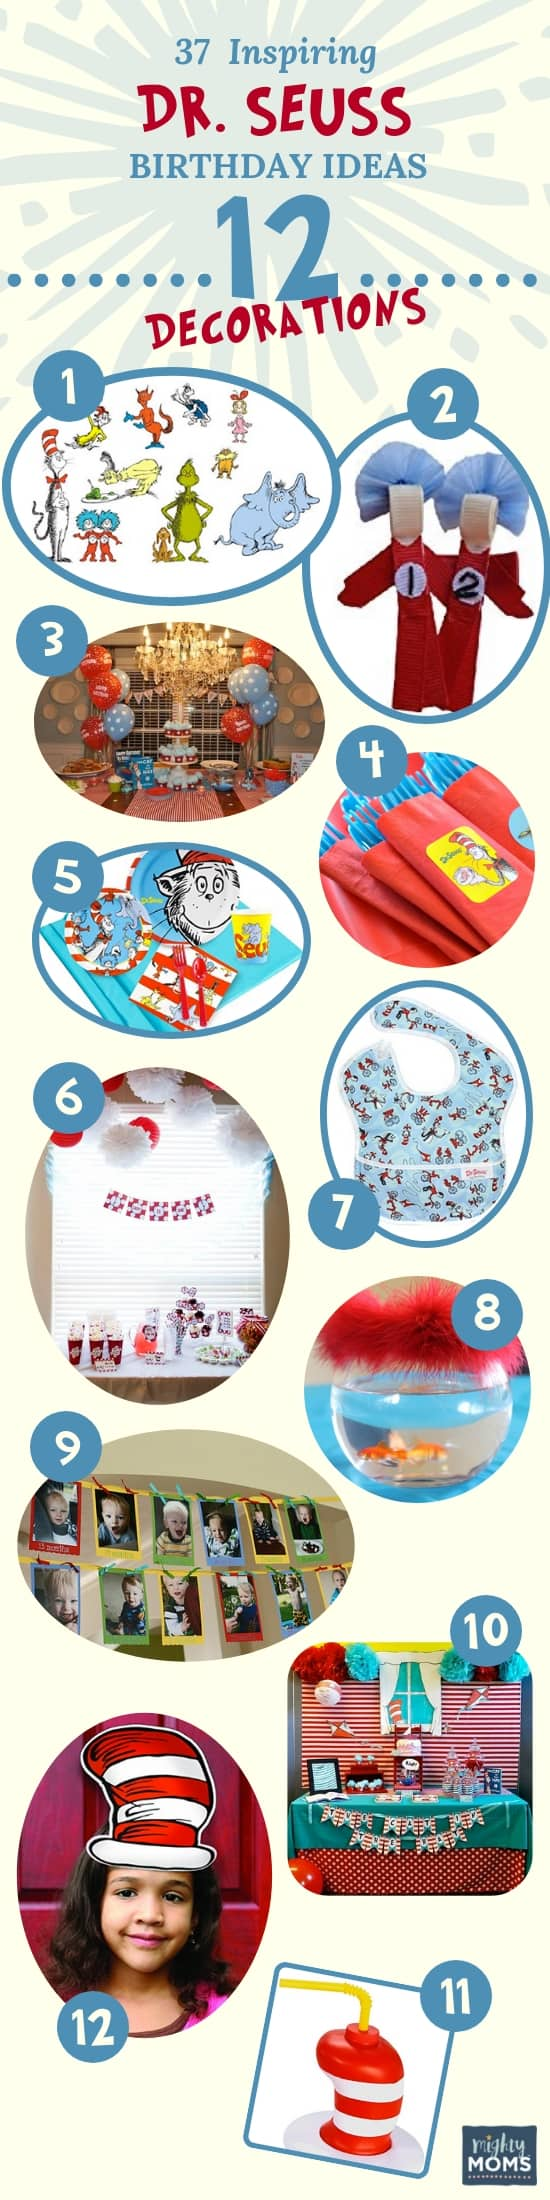 Decorations: 37 Inspiring Dr. Seuss Party Birthday Ideas for the Most Fantastic Party in Whoville - Mightymoms.club